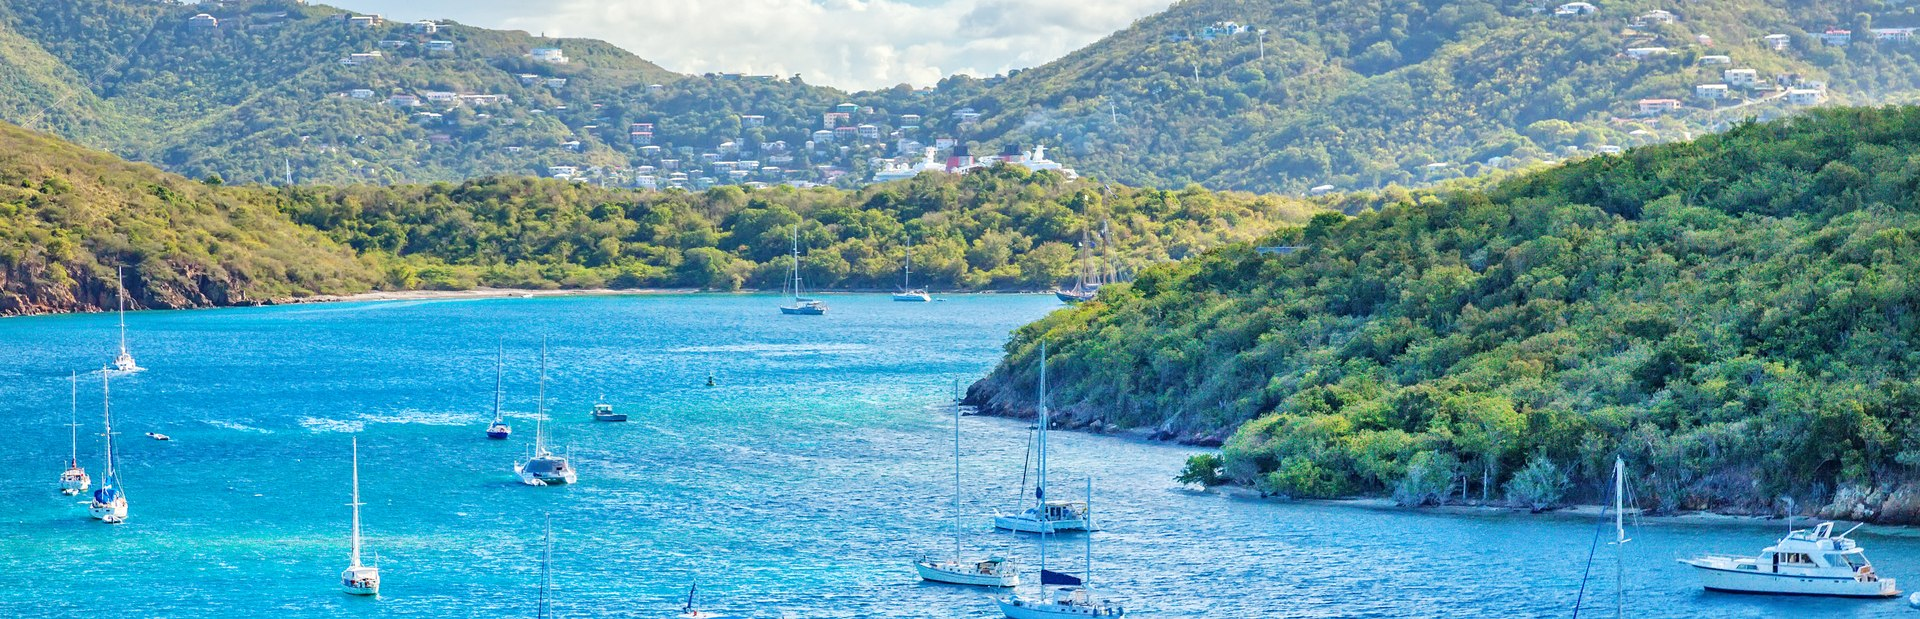 Things to see & do in the Virgin Islands